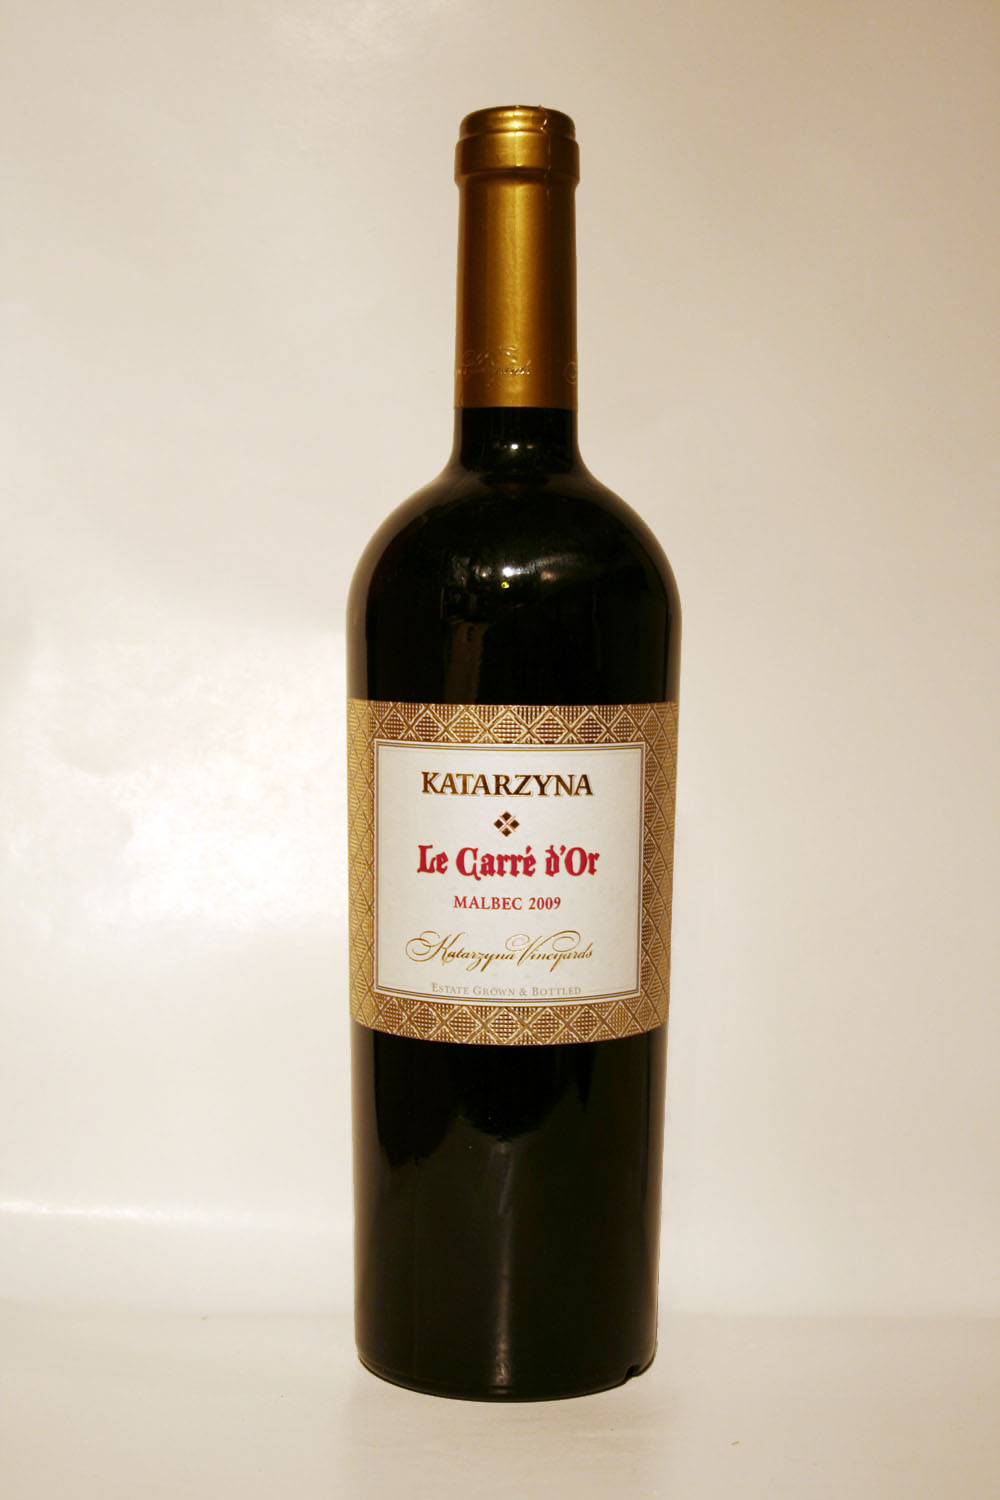 Le Carre d'Or Malbec 2009